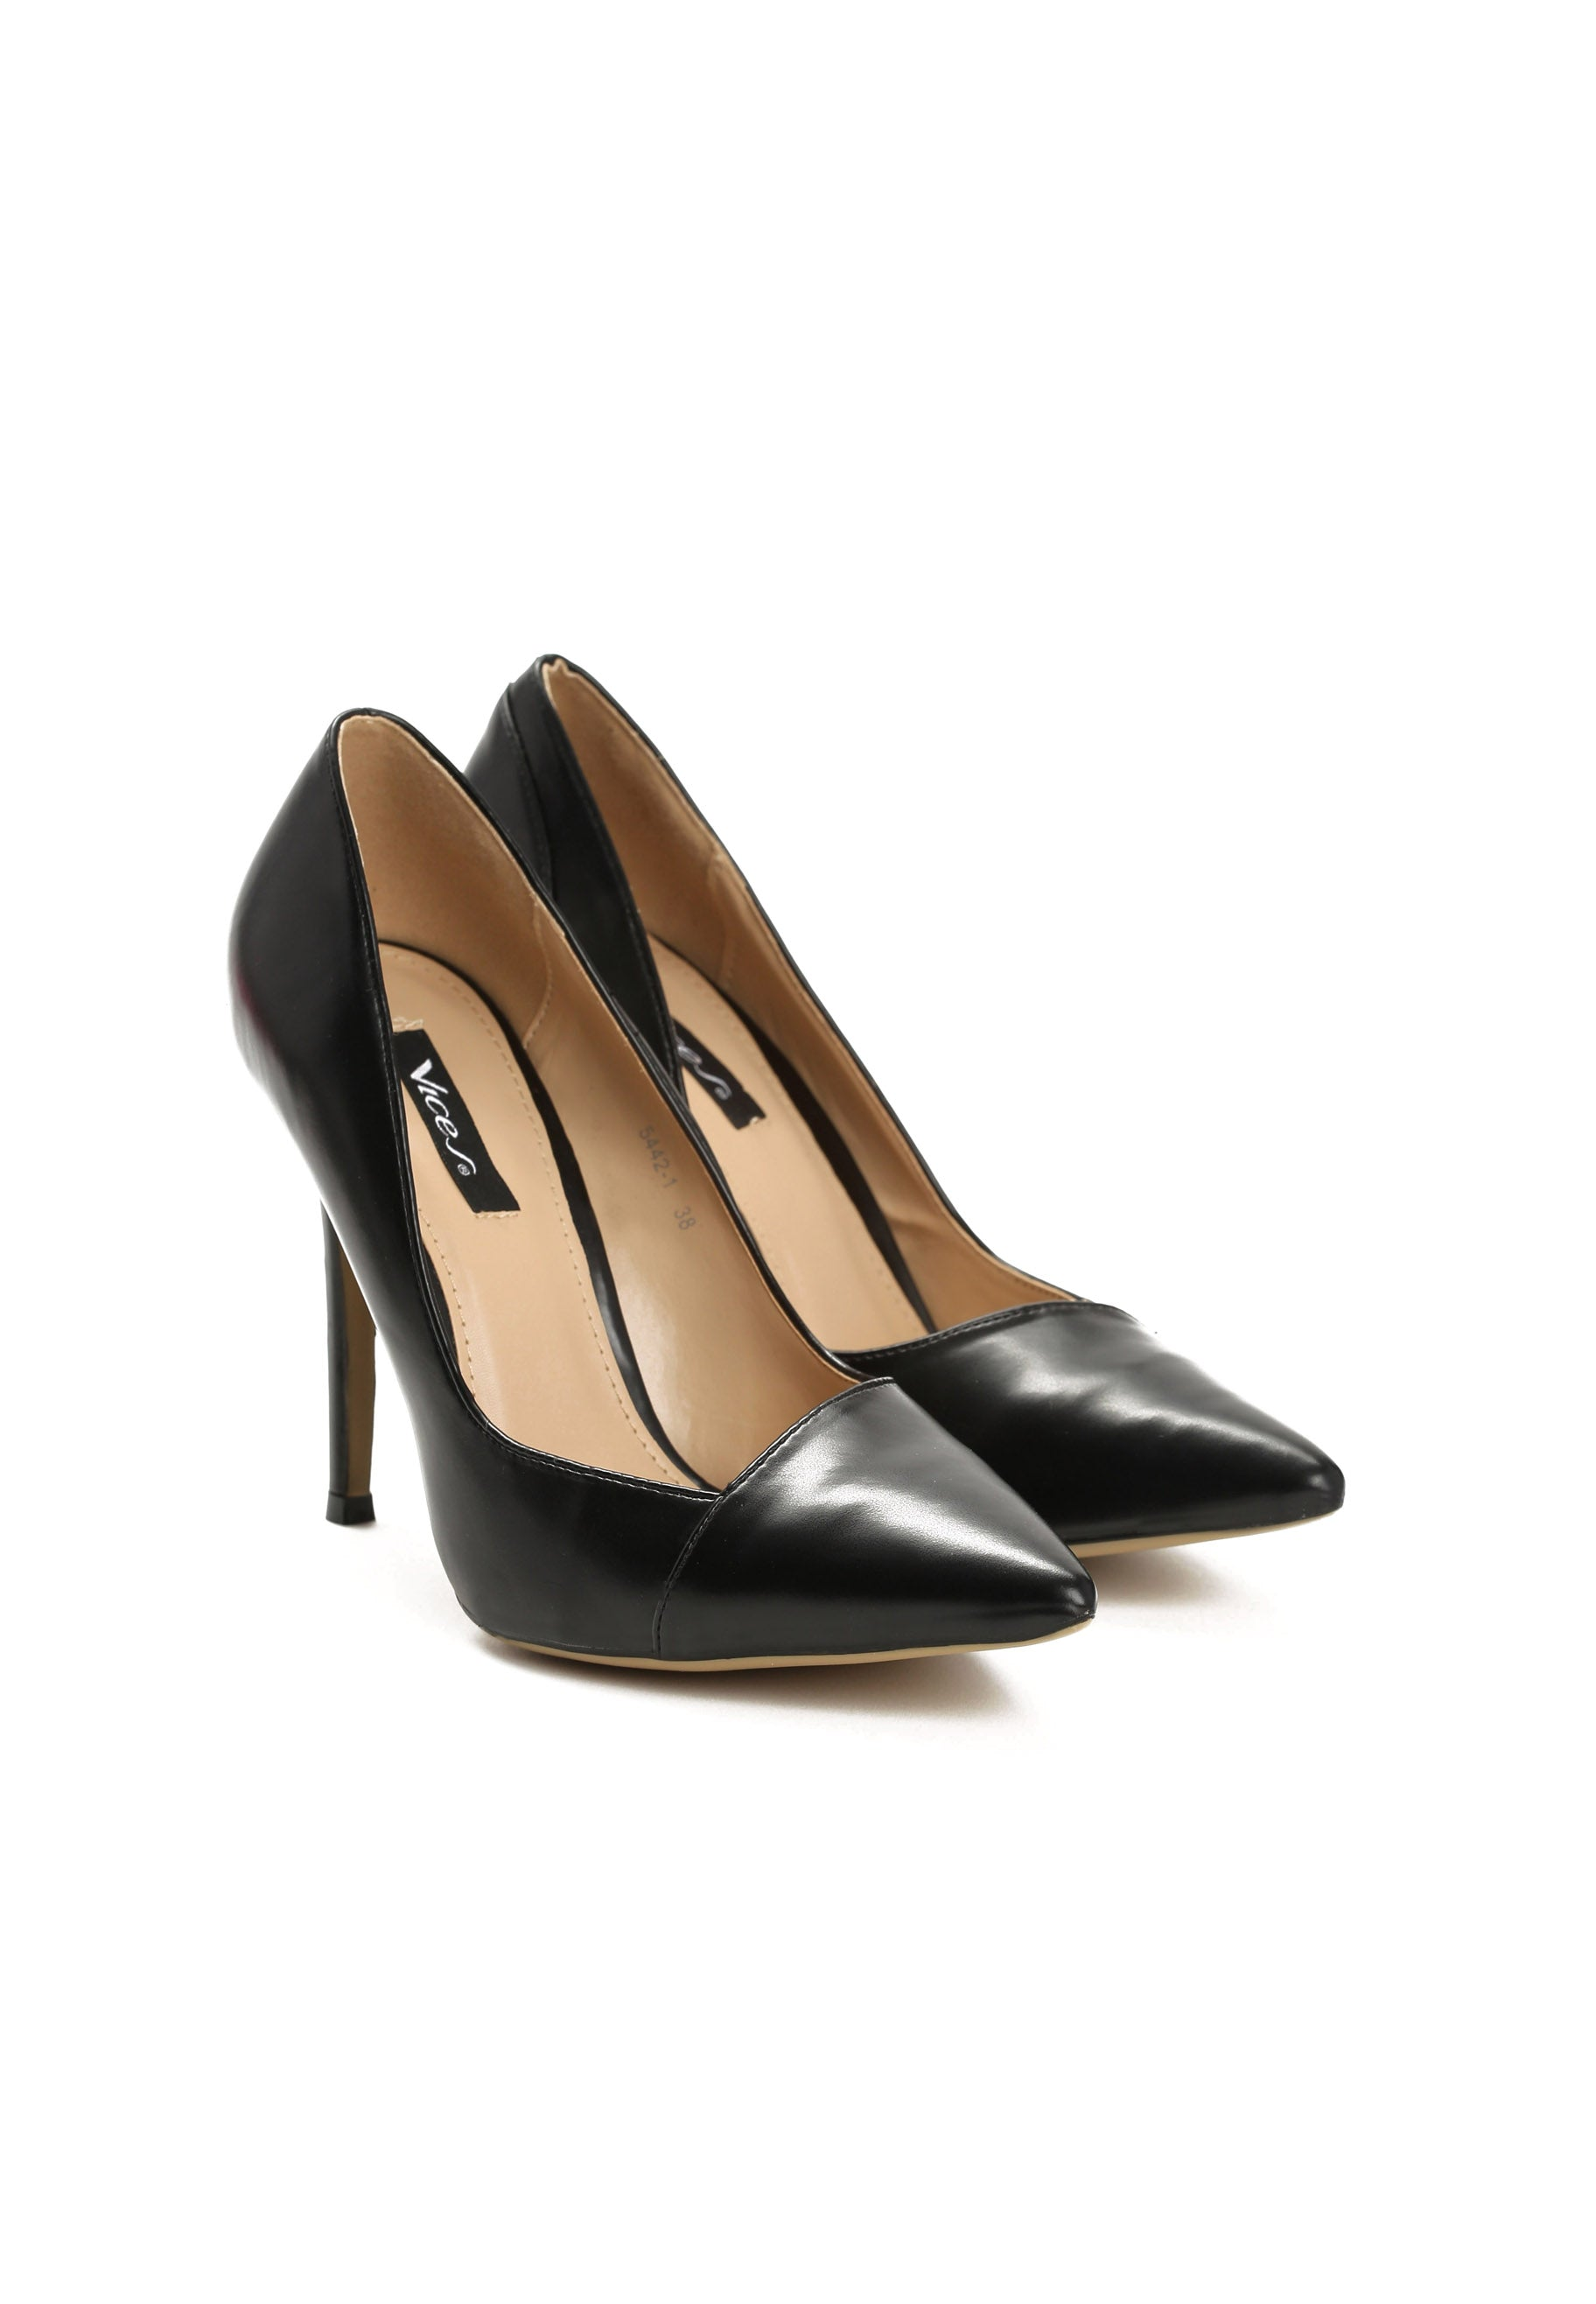 MILDRED High Heel Pump - Black